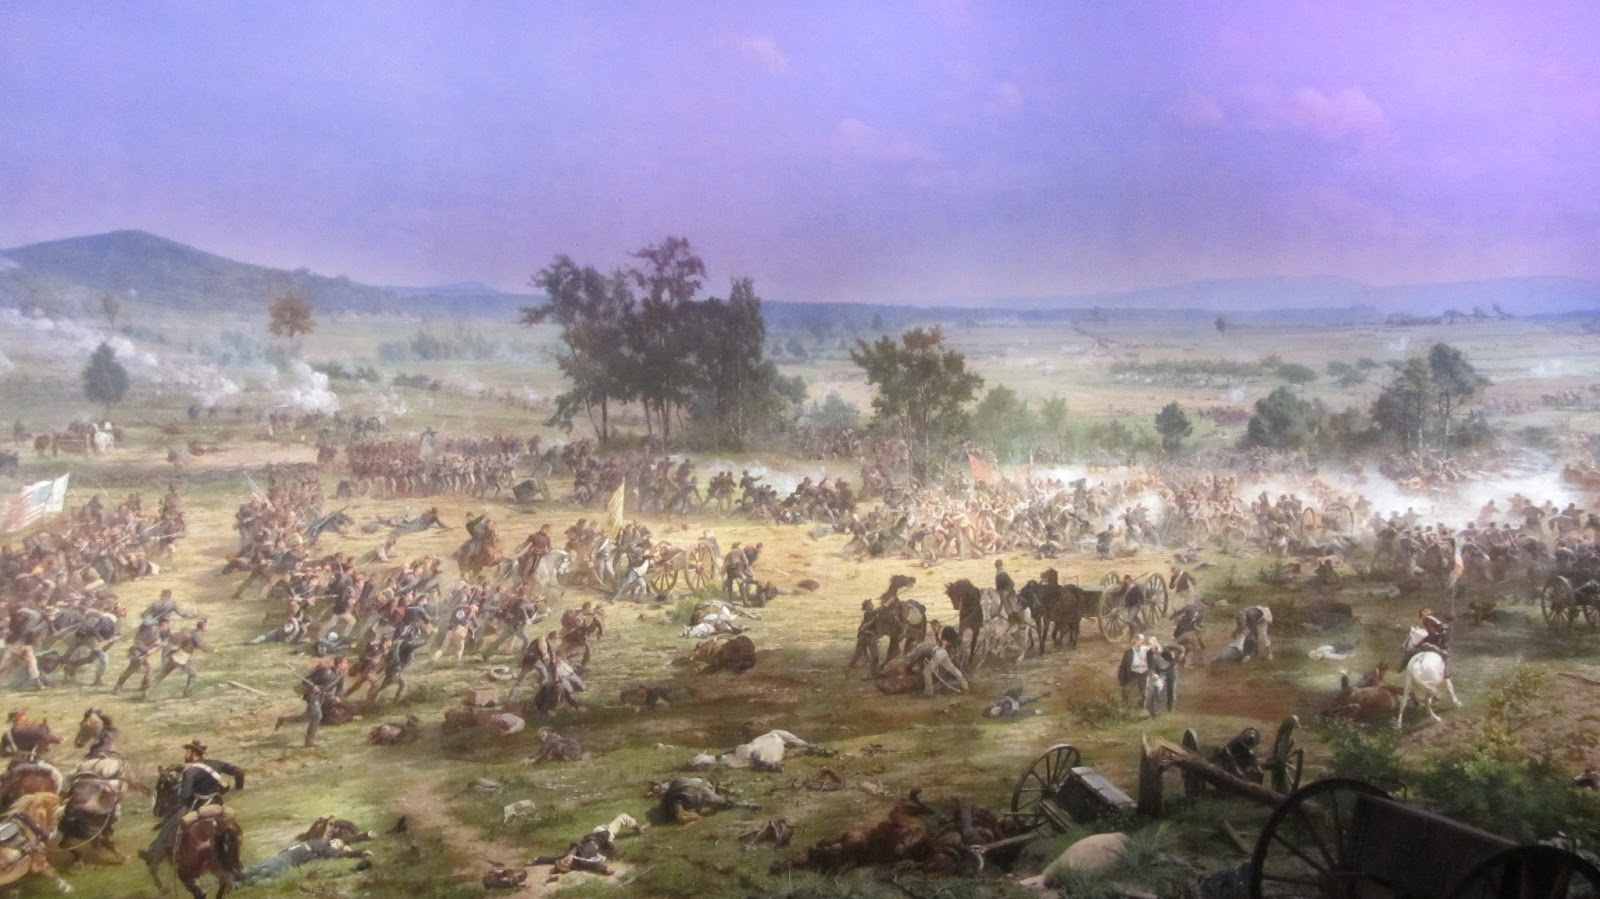 battle of gettys burge The battle of gettysburg is seen as the turning point of the war general lee had attempted and failed to invade the north this was a move designed to remove pressure from virginia and possibly emerge victorious so as to quickly end the war.